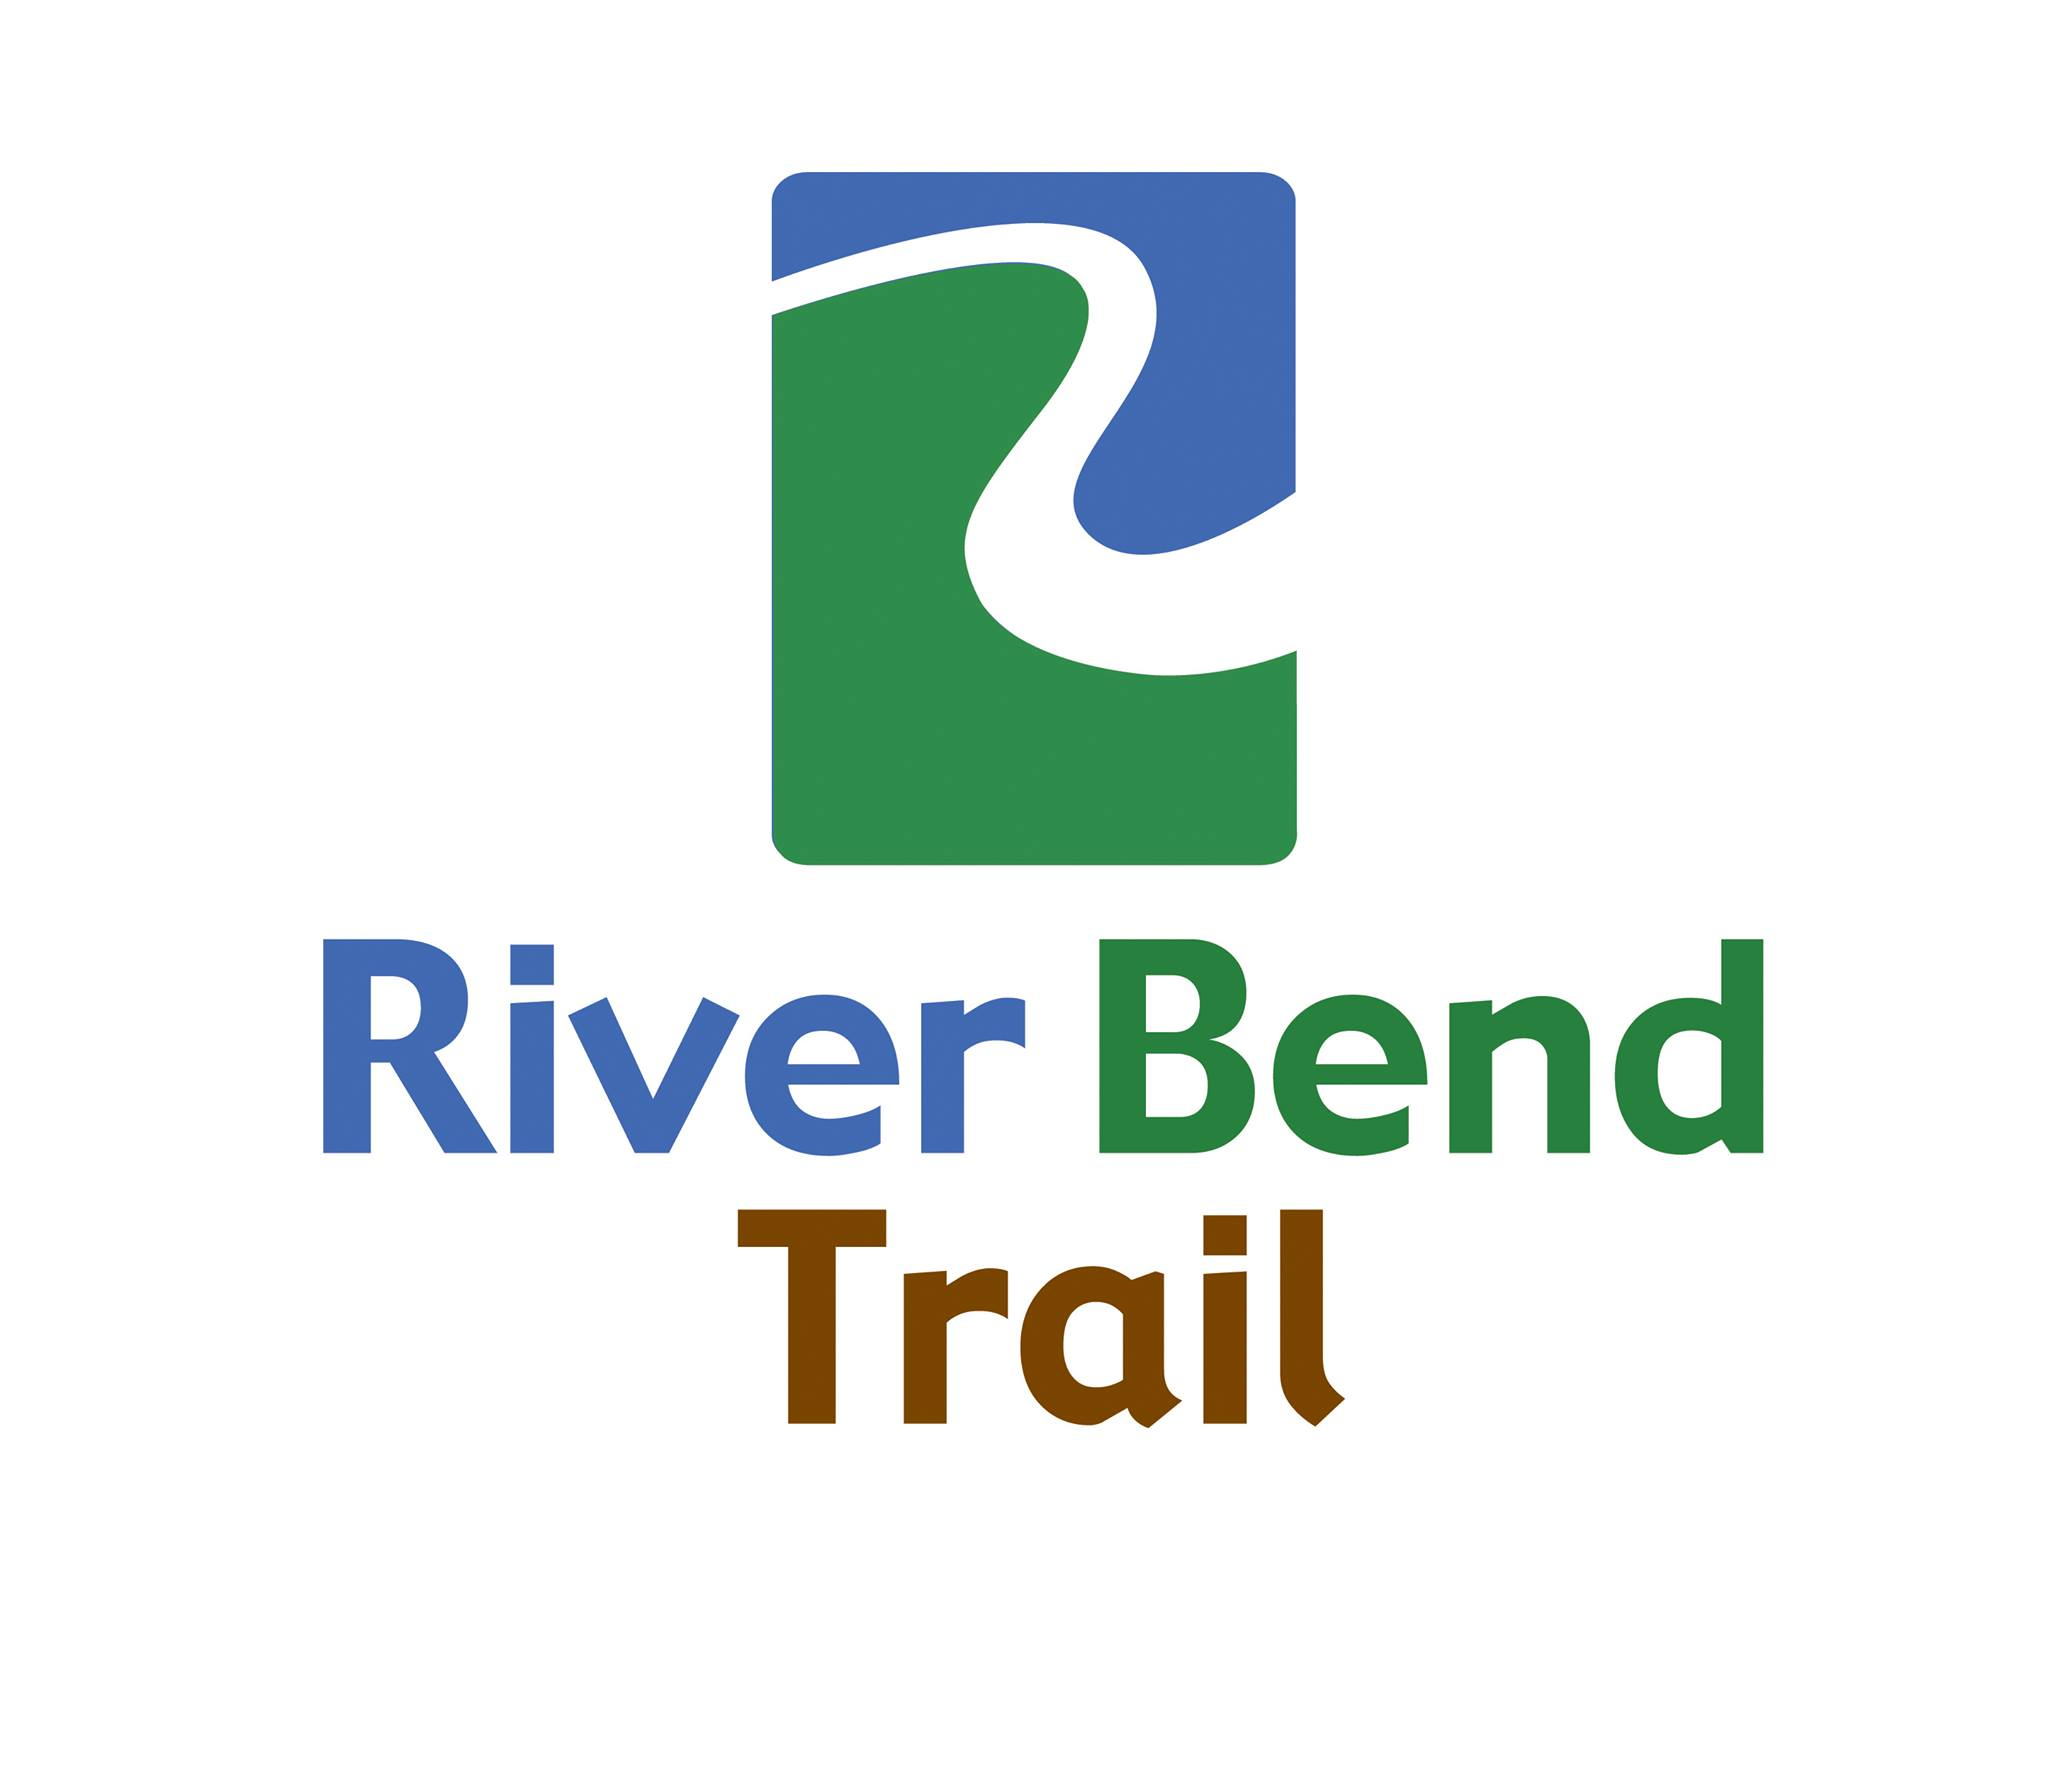 River Bend Trail